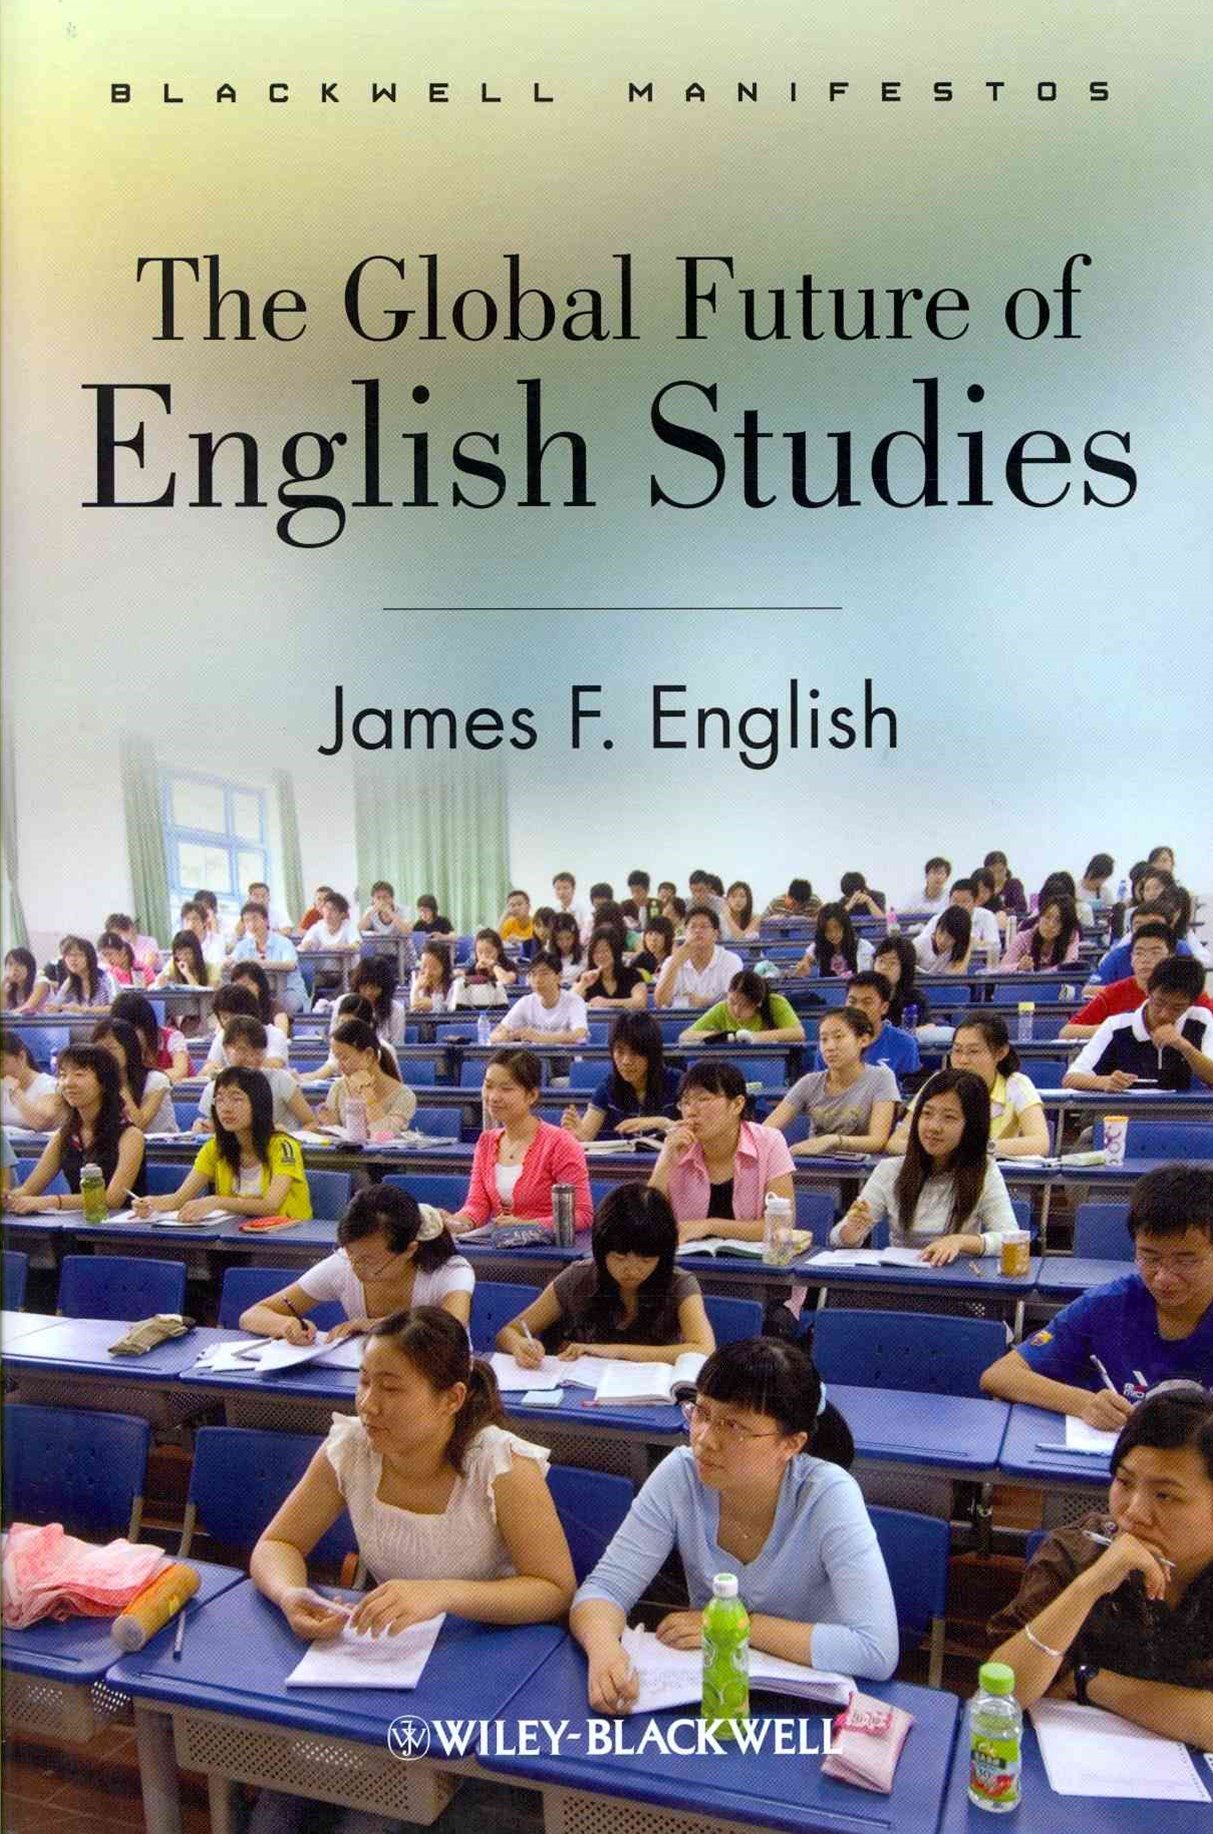 The Global Future of English Studies